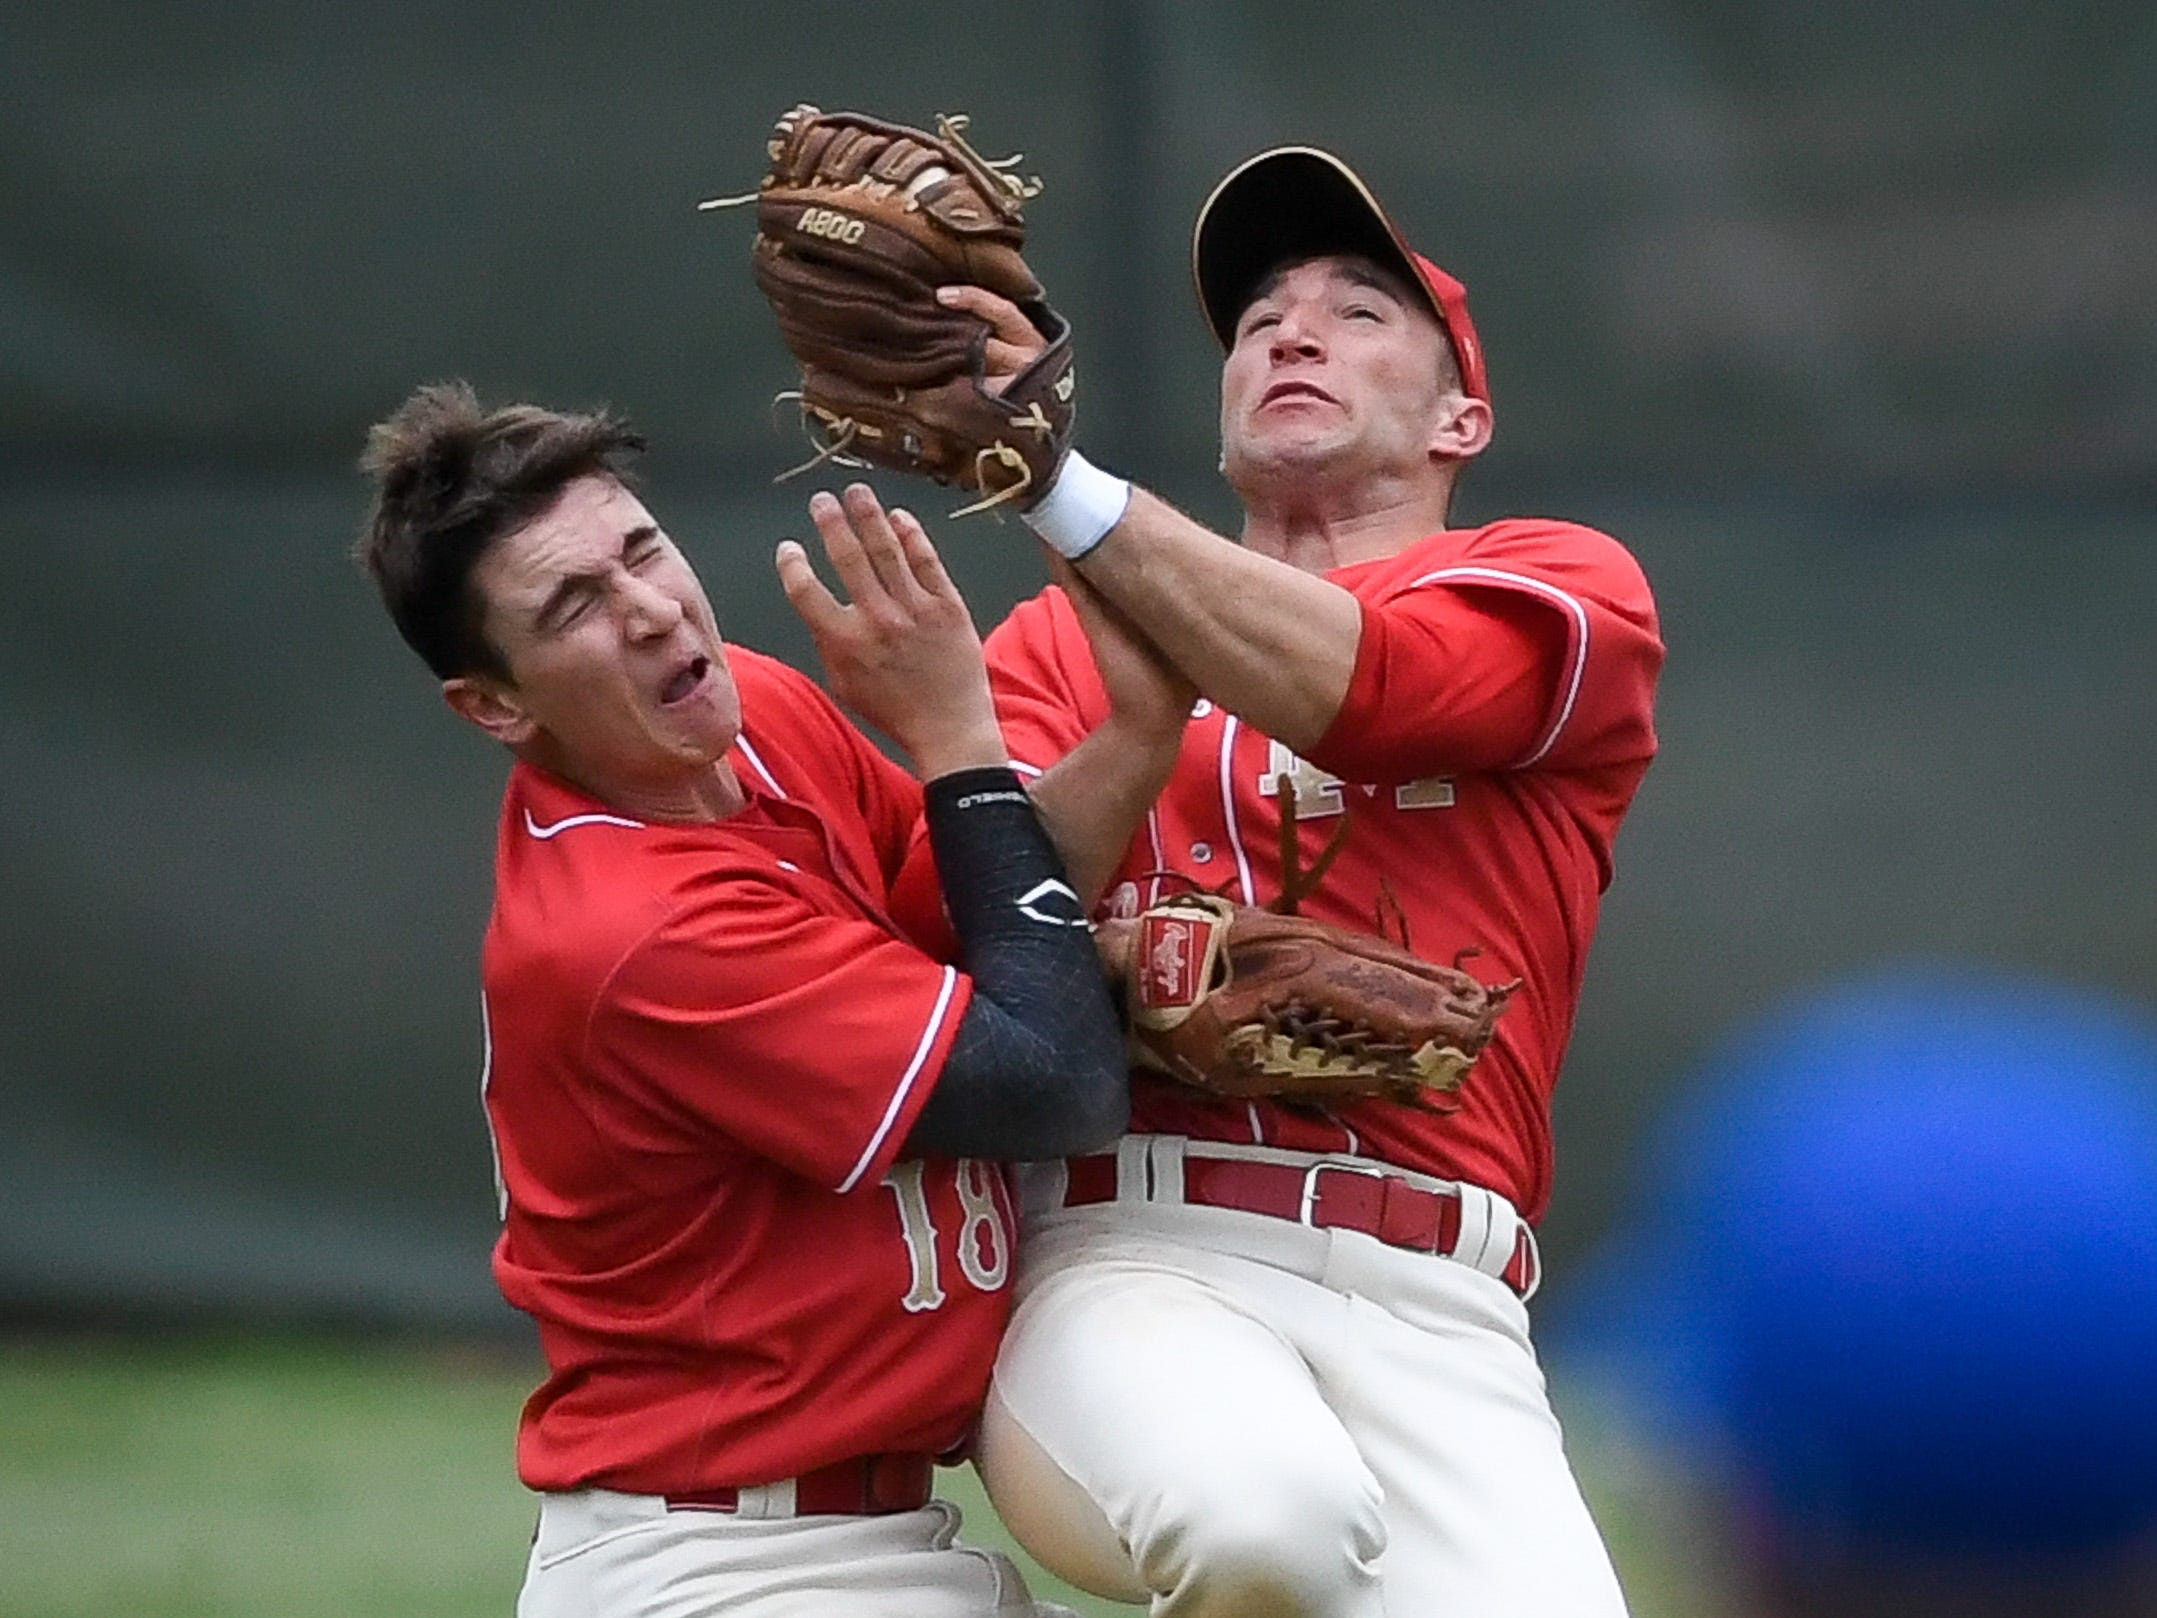 Mater Dei's Dane Babillas (18) and Hunter Taylor (22) collide after Taylor made a outfield catch as the Mater Dei Wildcats play the Memorial Tigers in a SIAC matchup at Stone Field Tuesday, April 23, 2019.